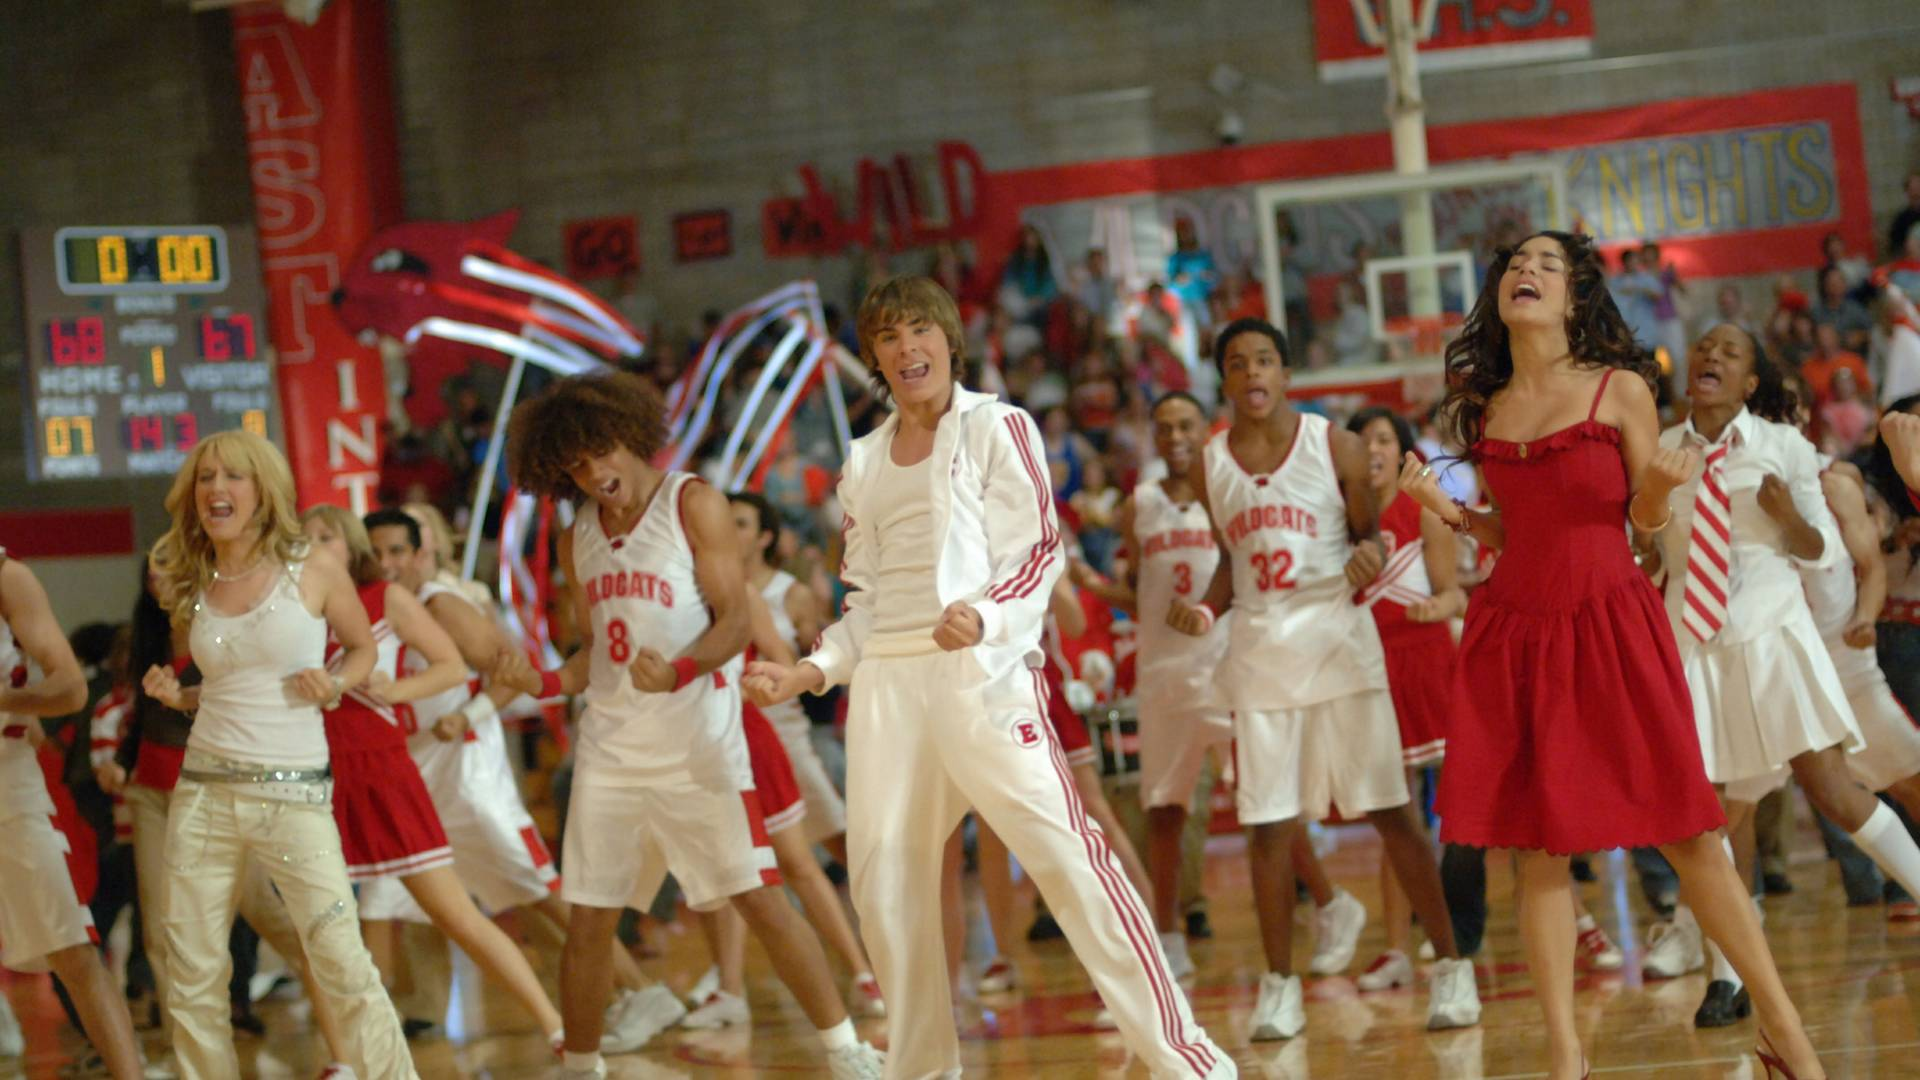 High School Musical kommt als Serie!